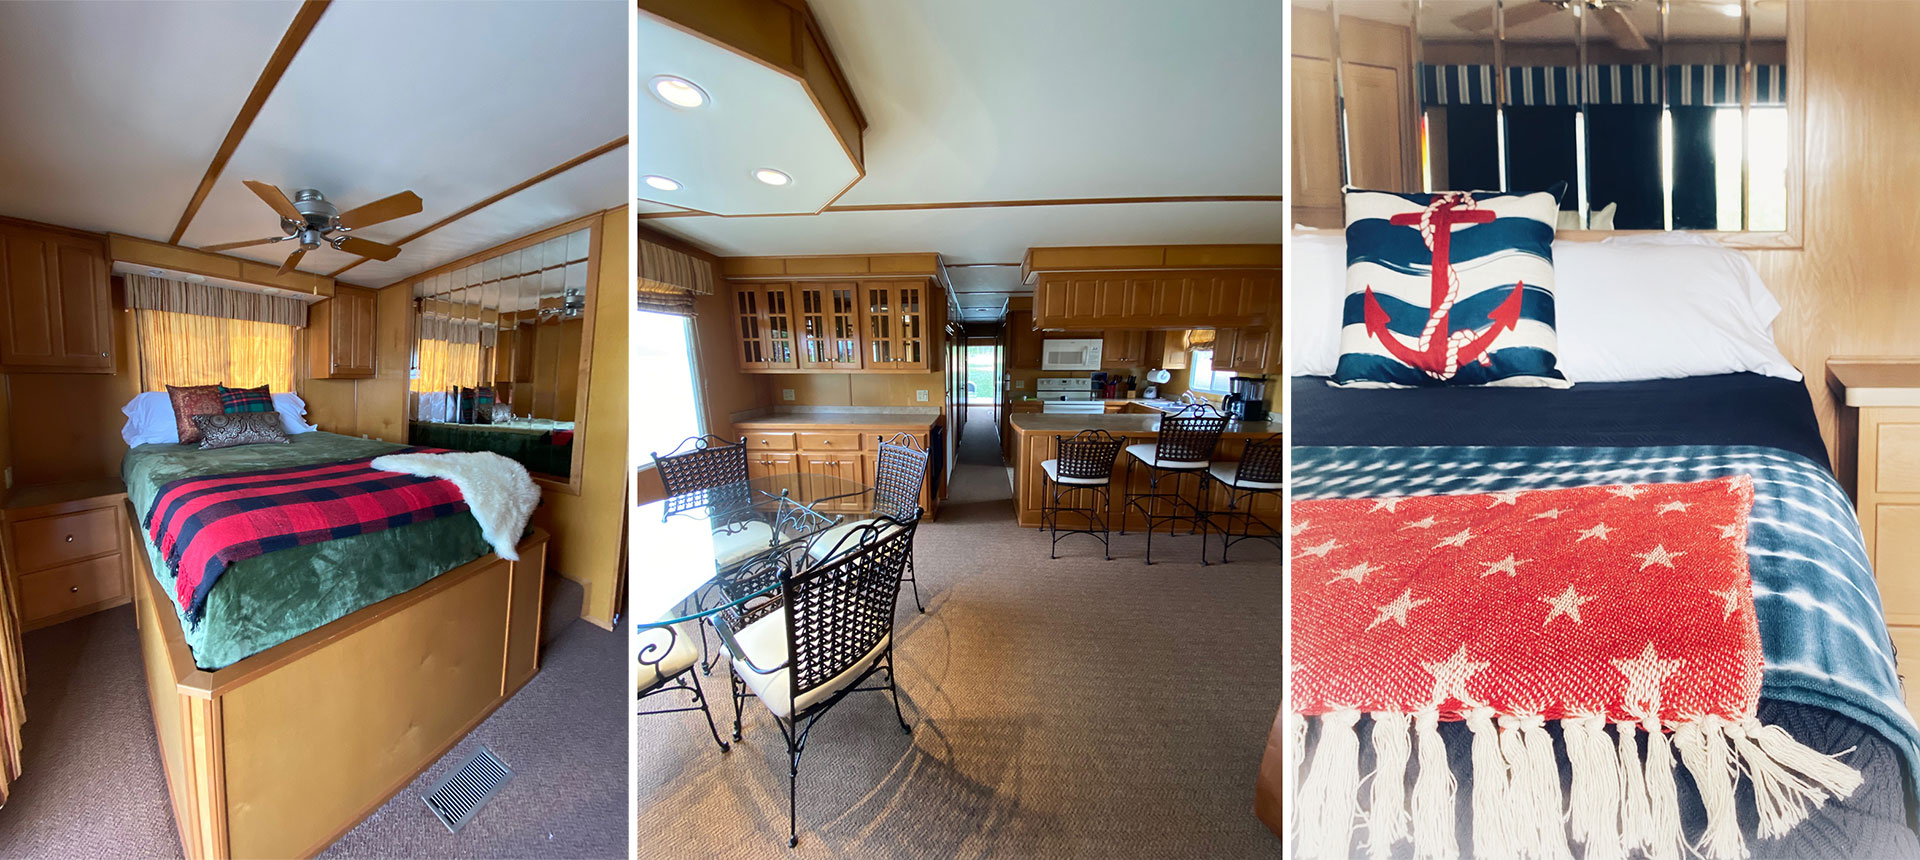 Interiors of houseboats